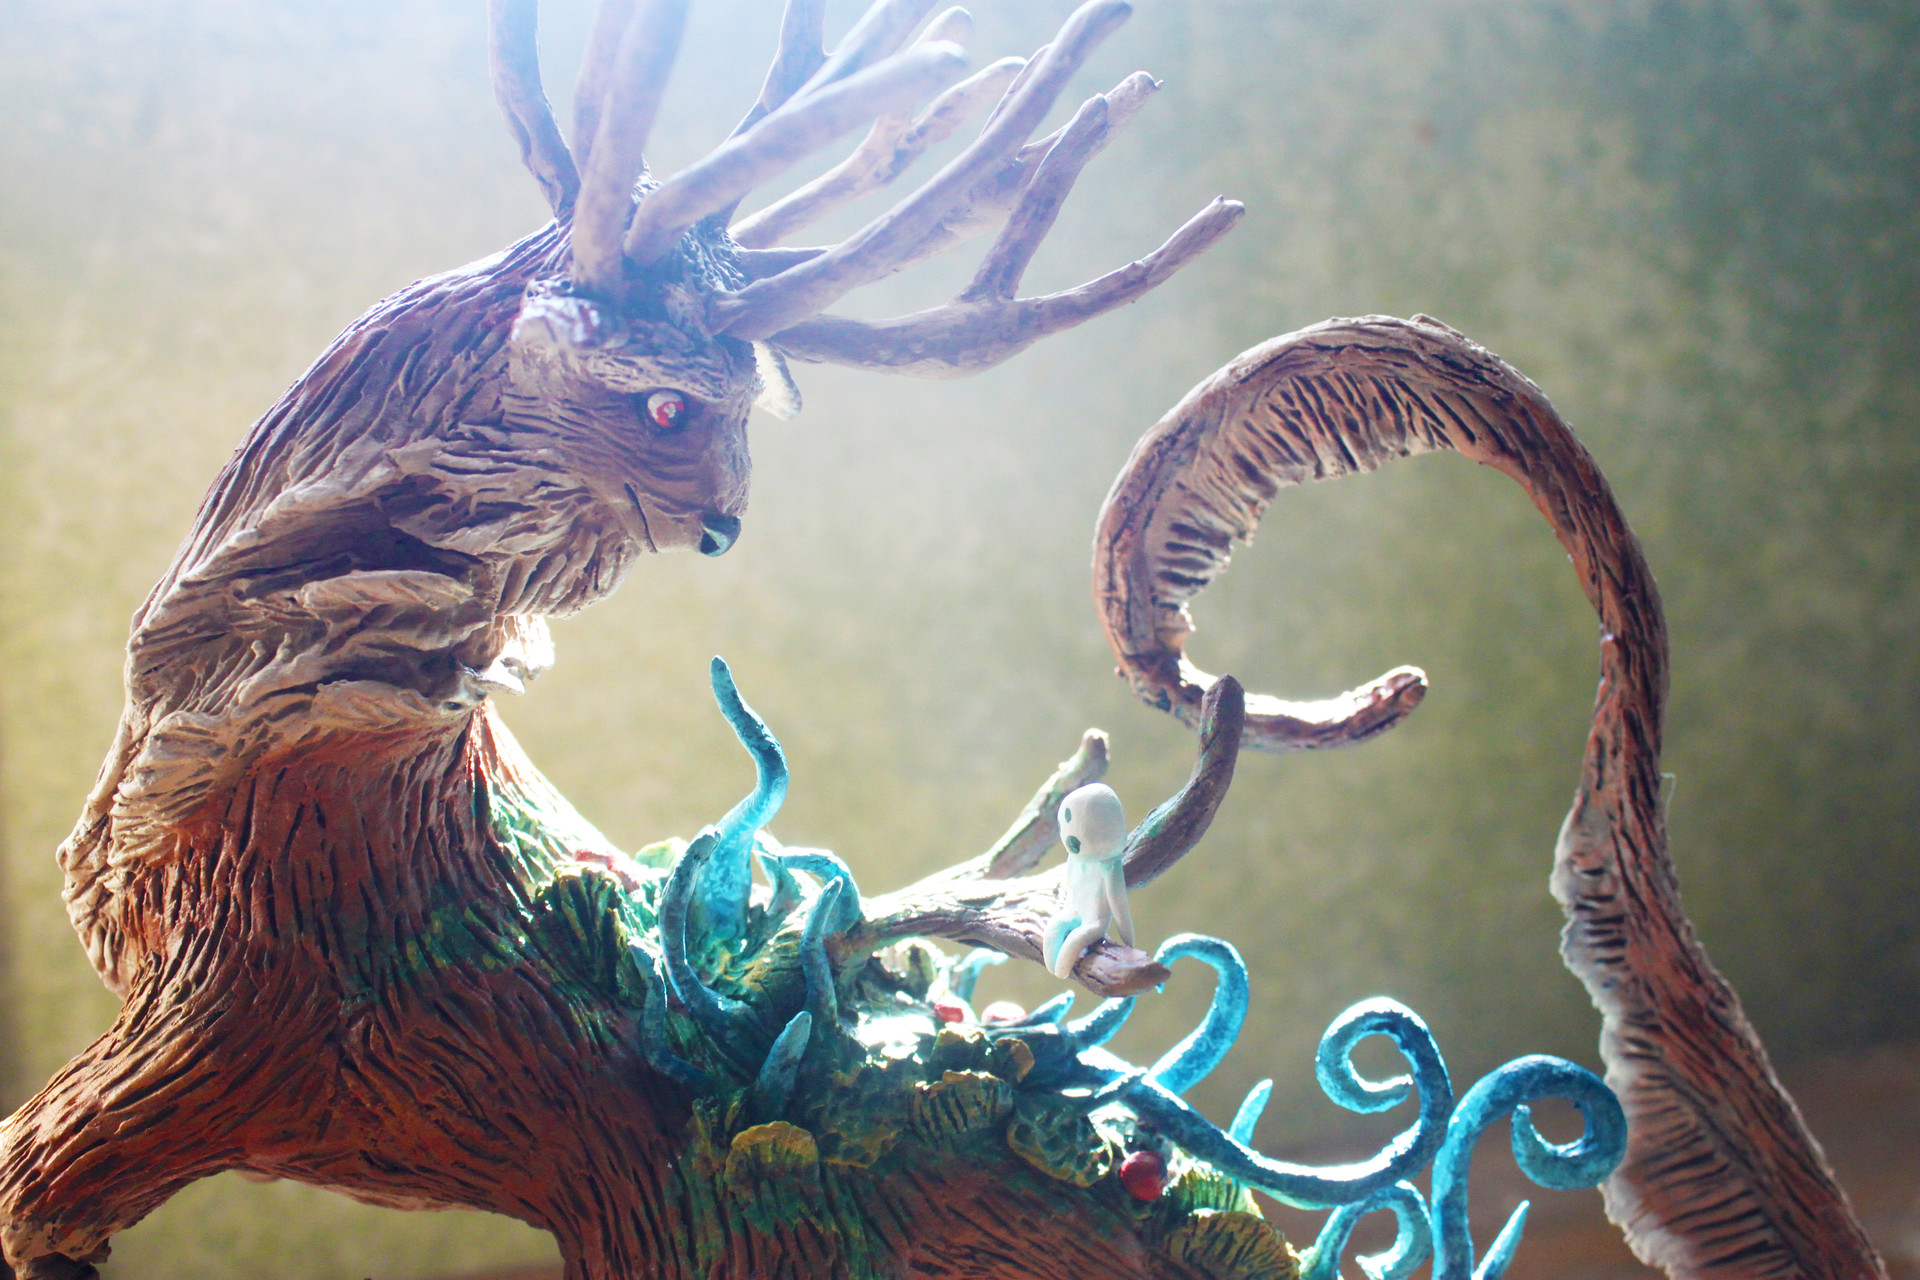 Princess Mononoke Inspired Forest Spirit Figure